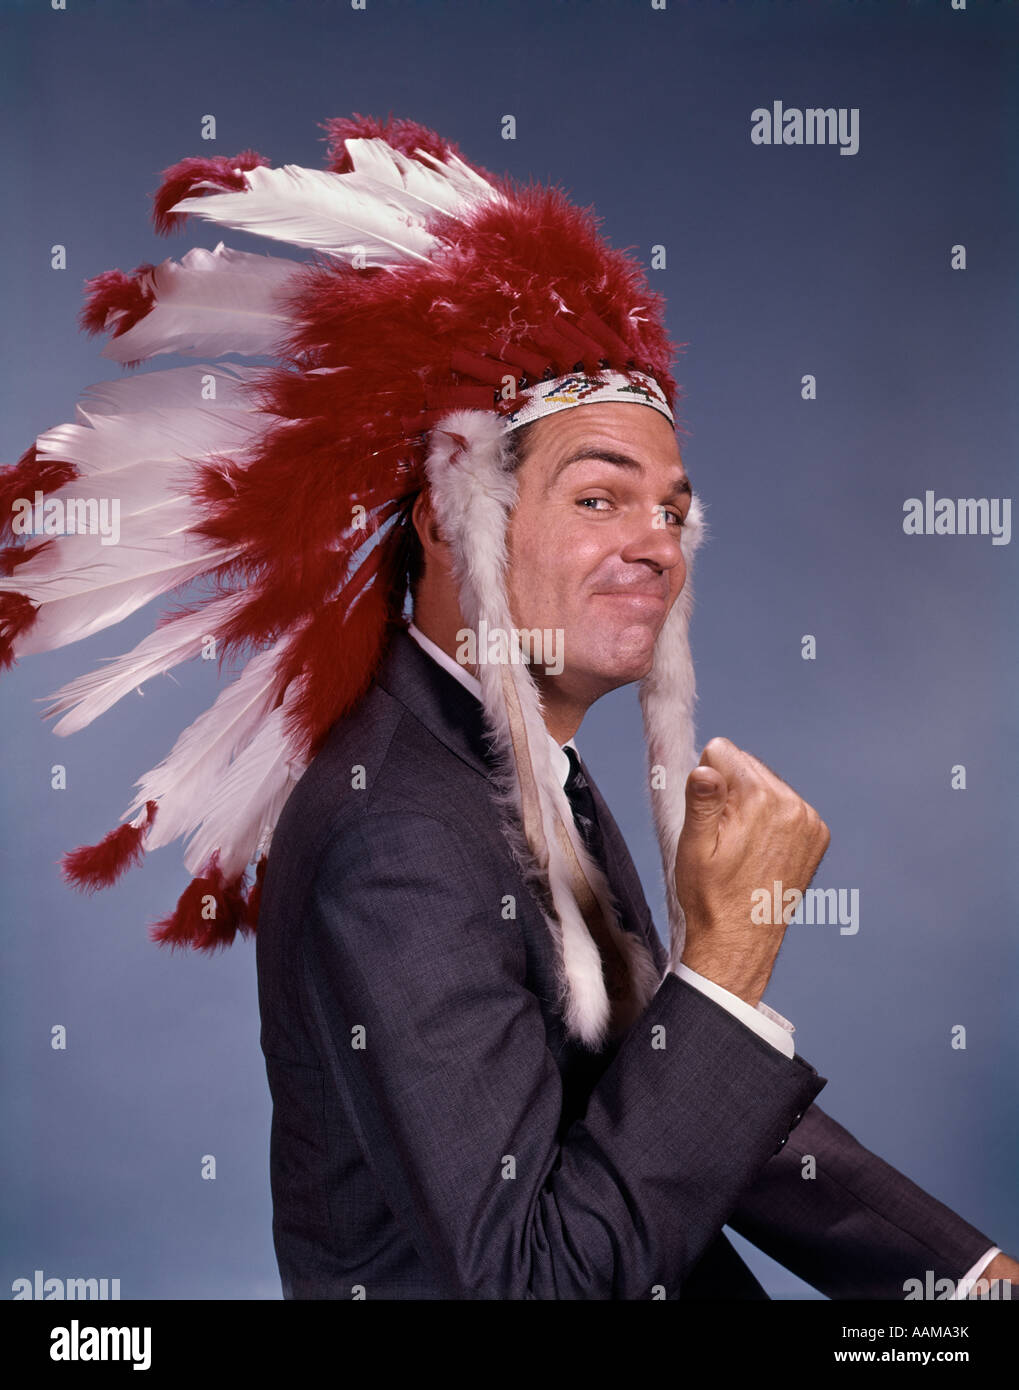 1960s CHARACTER MAN NATIVE AMERICAN INDIAN CHIEF FEATHER HEADDRESS FACIAL EXPRESSION GESTURE RETRO VINTAGE - Stock Image